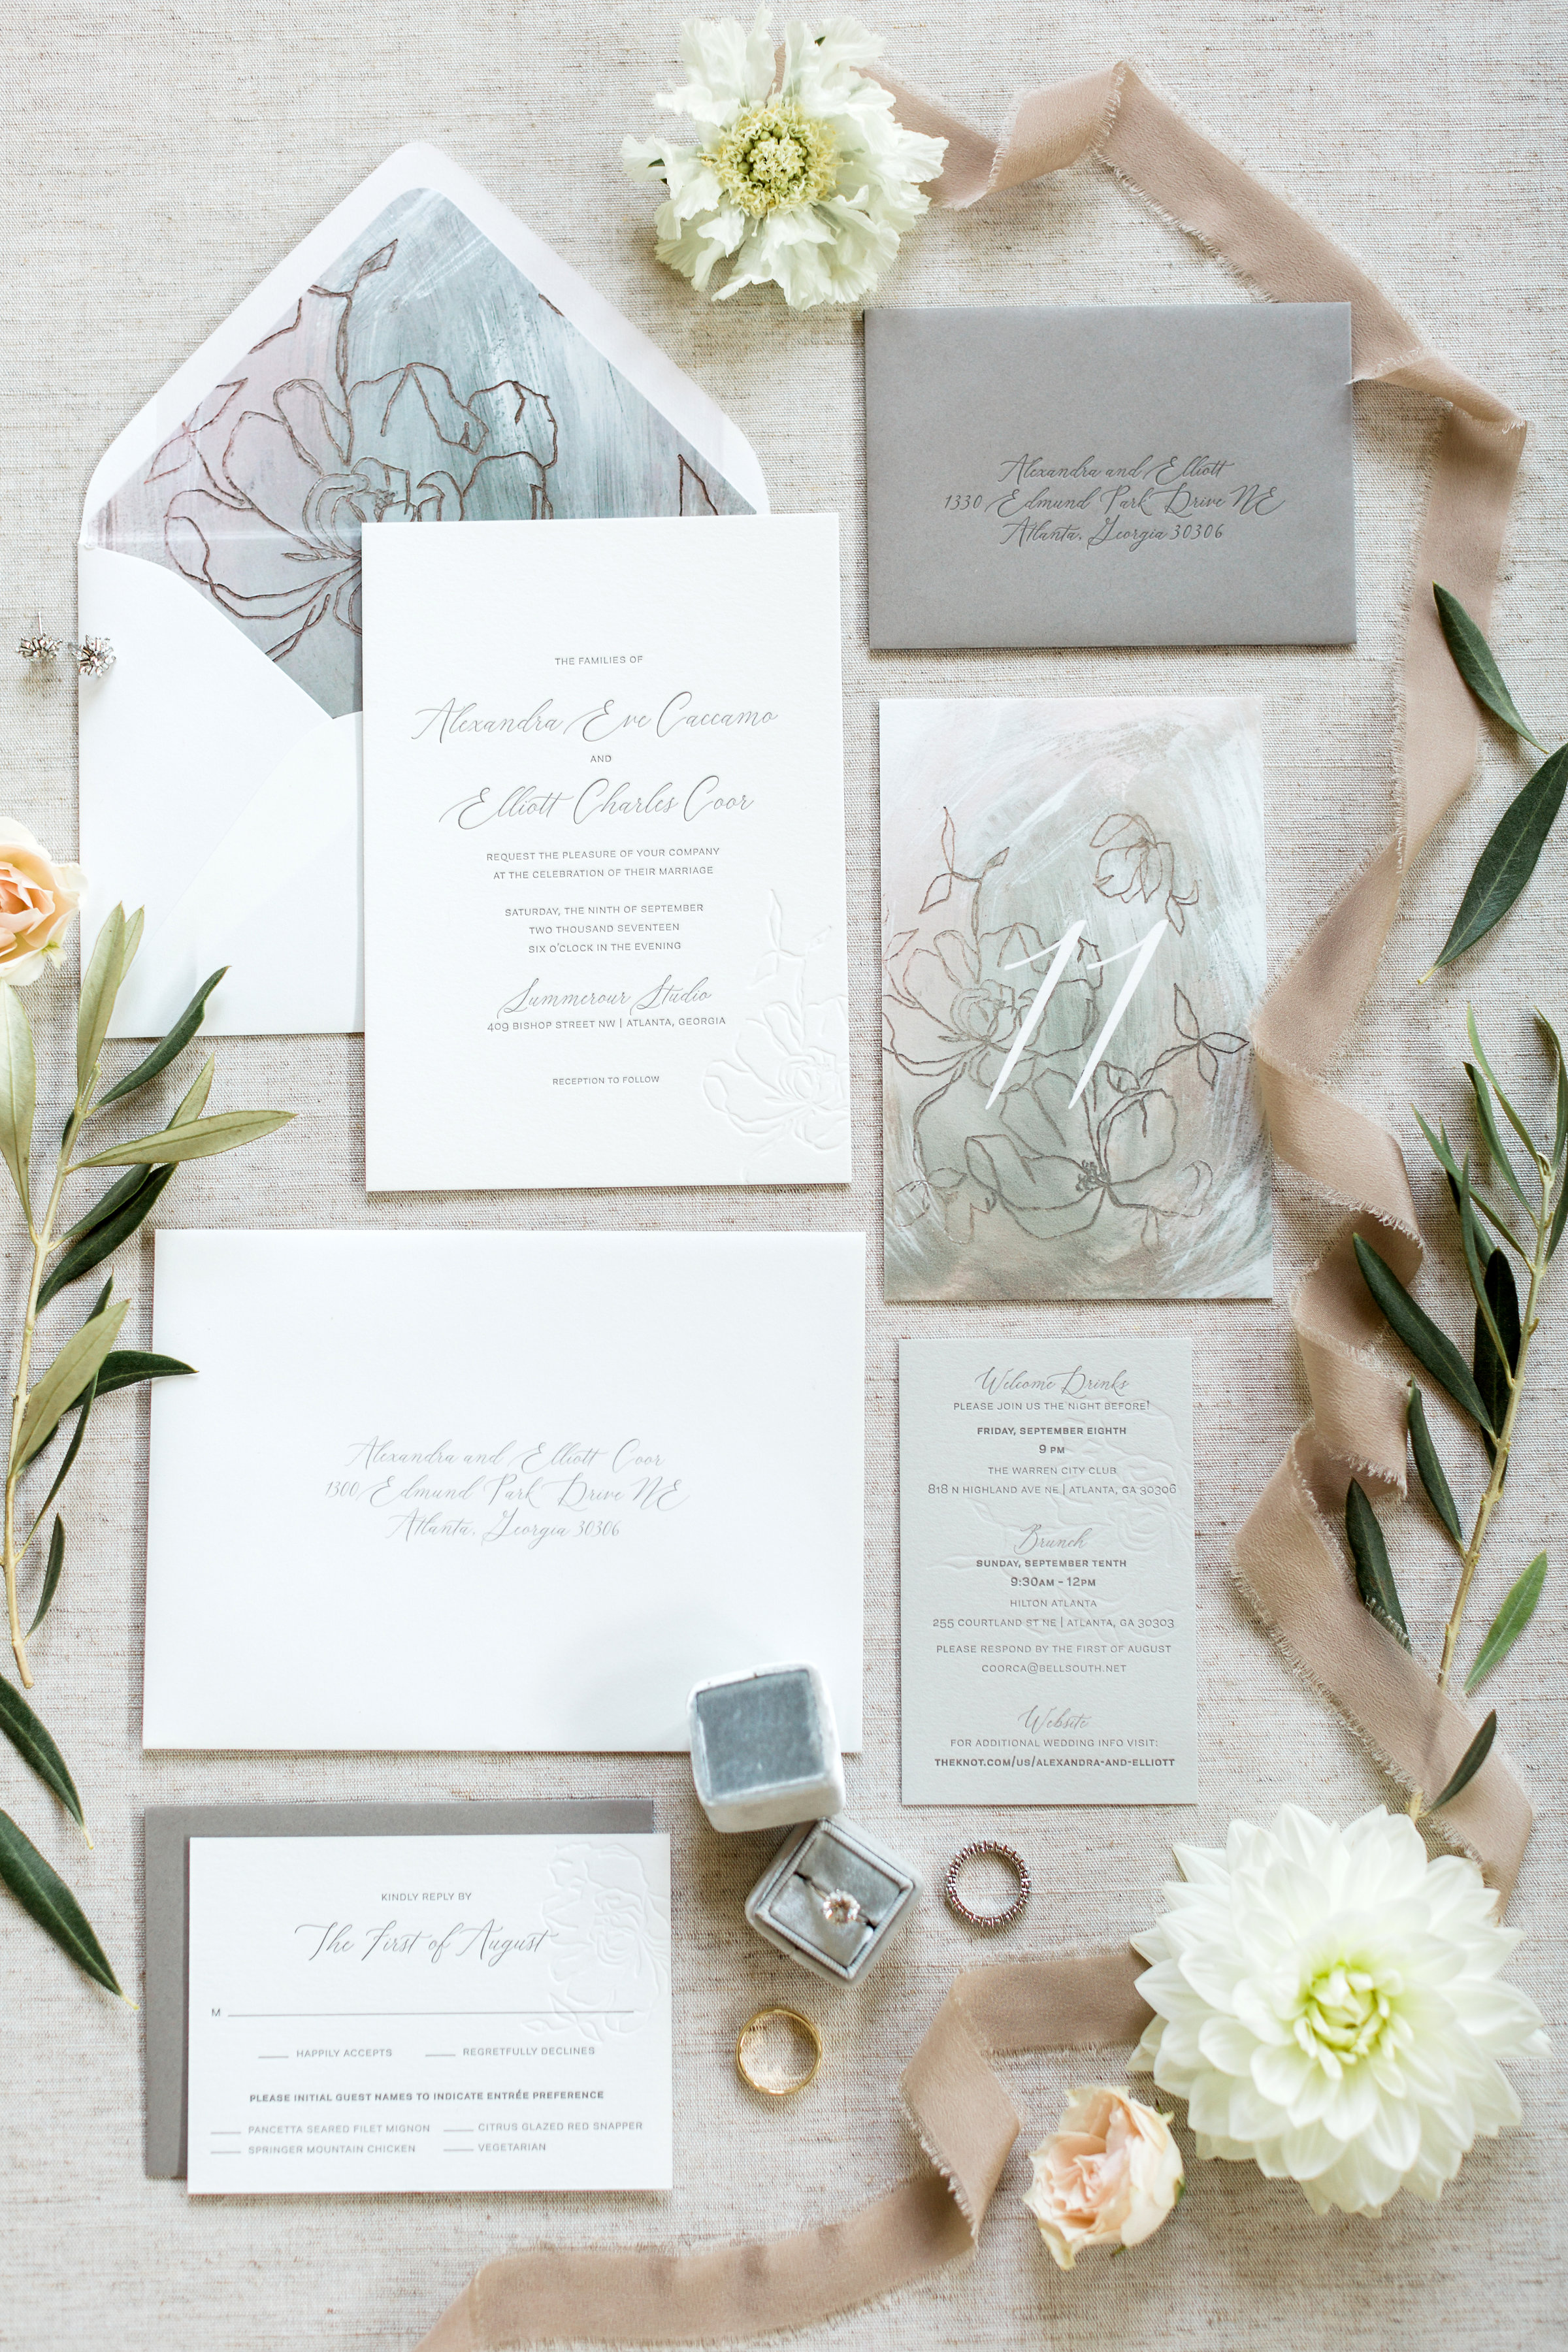 Allie&ElliottWedding_RusticWhite_001.jpg